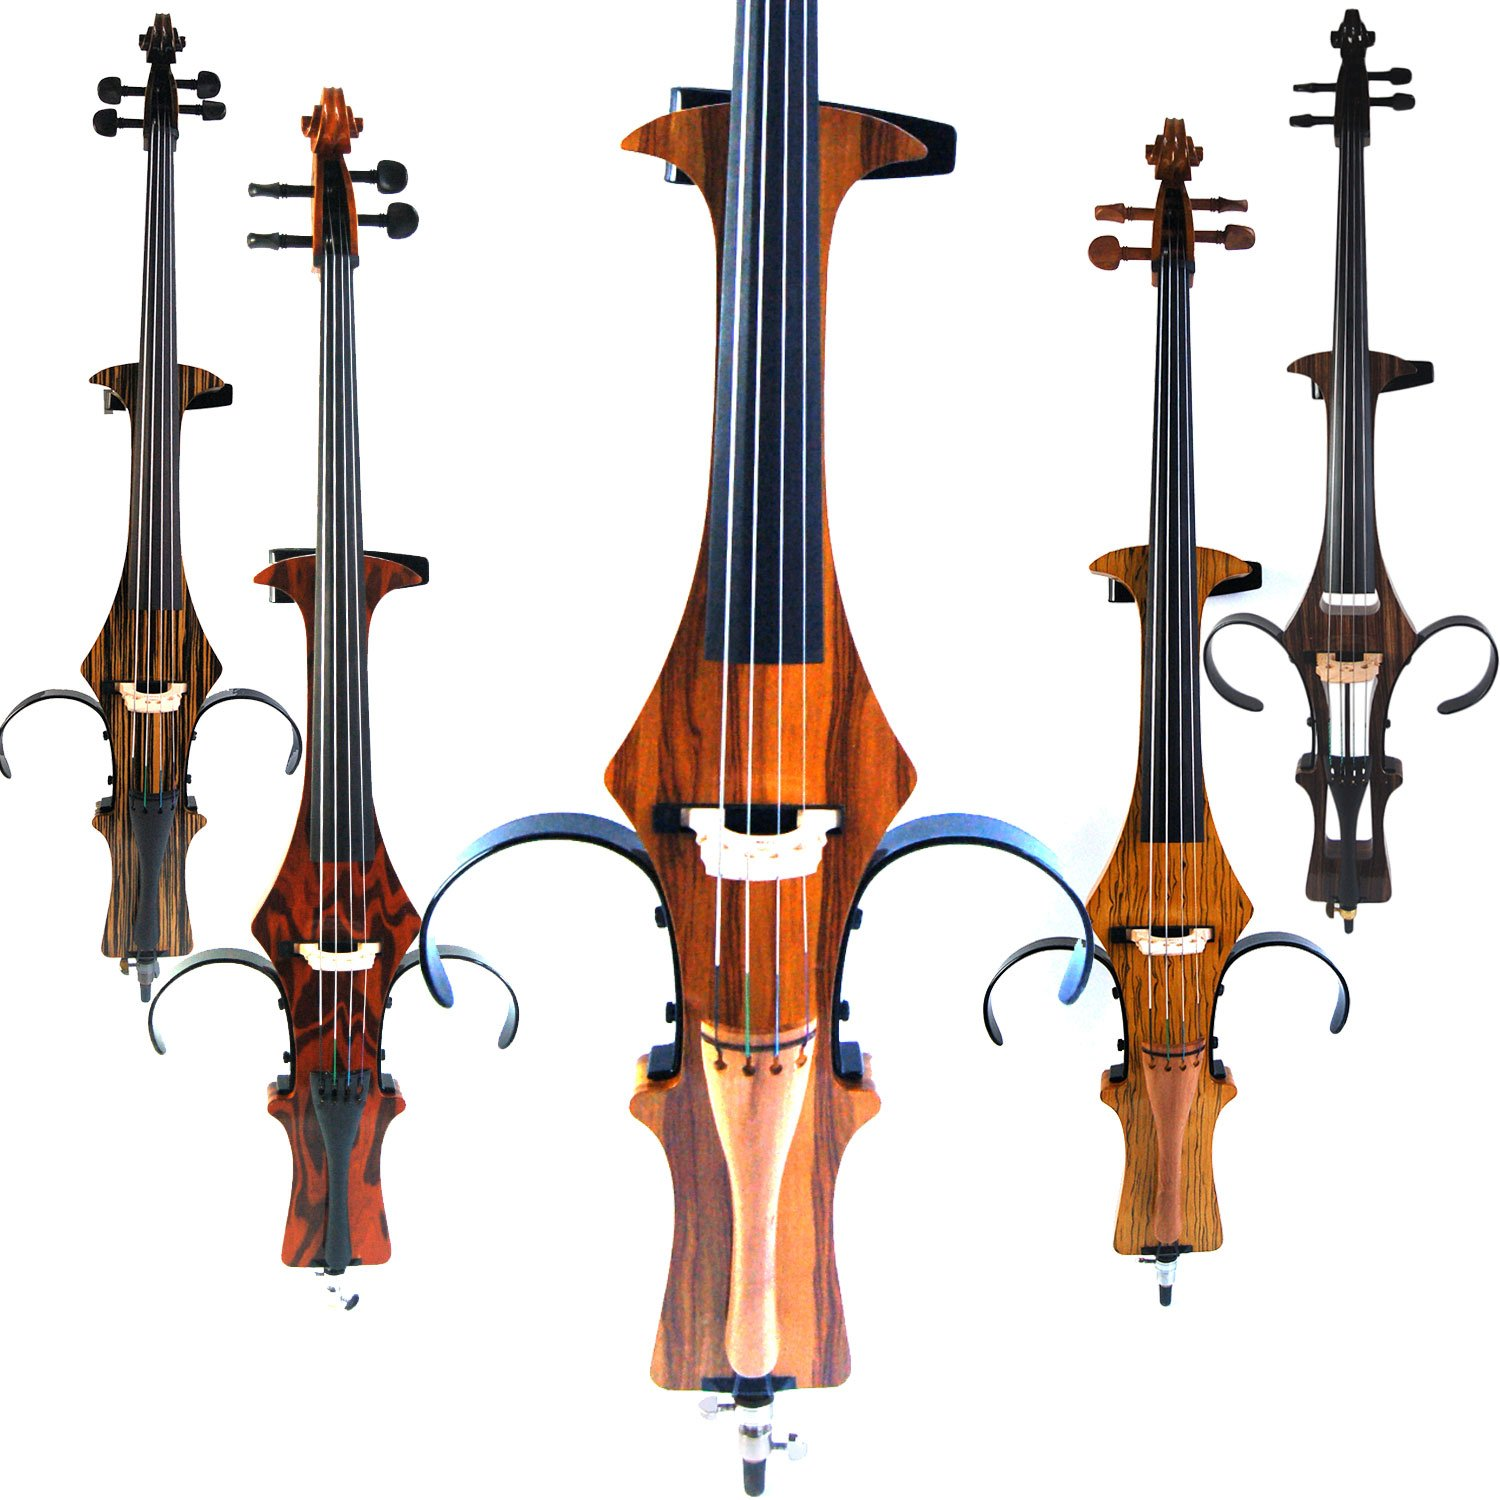 Aliyes Handmade Professional Solid Wood Electric Cello 4/4 Full Size Silent Electric Cello-Wood Grain